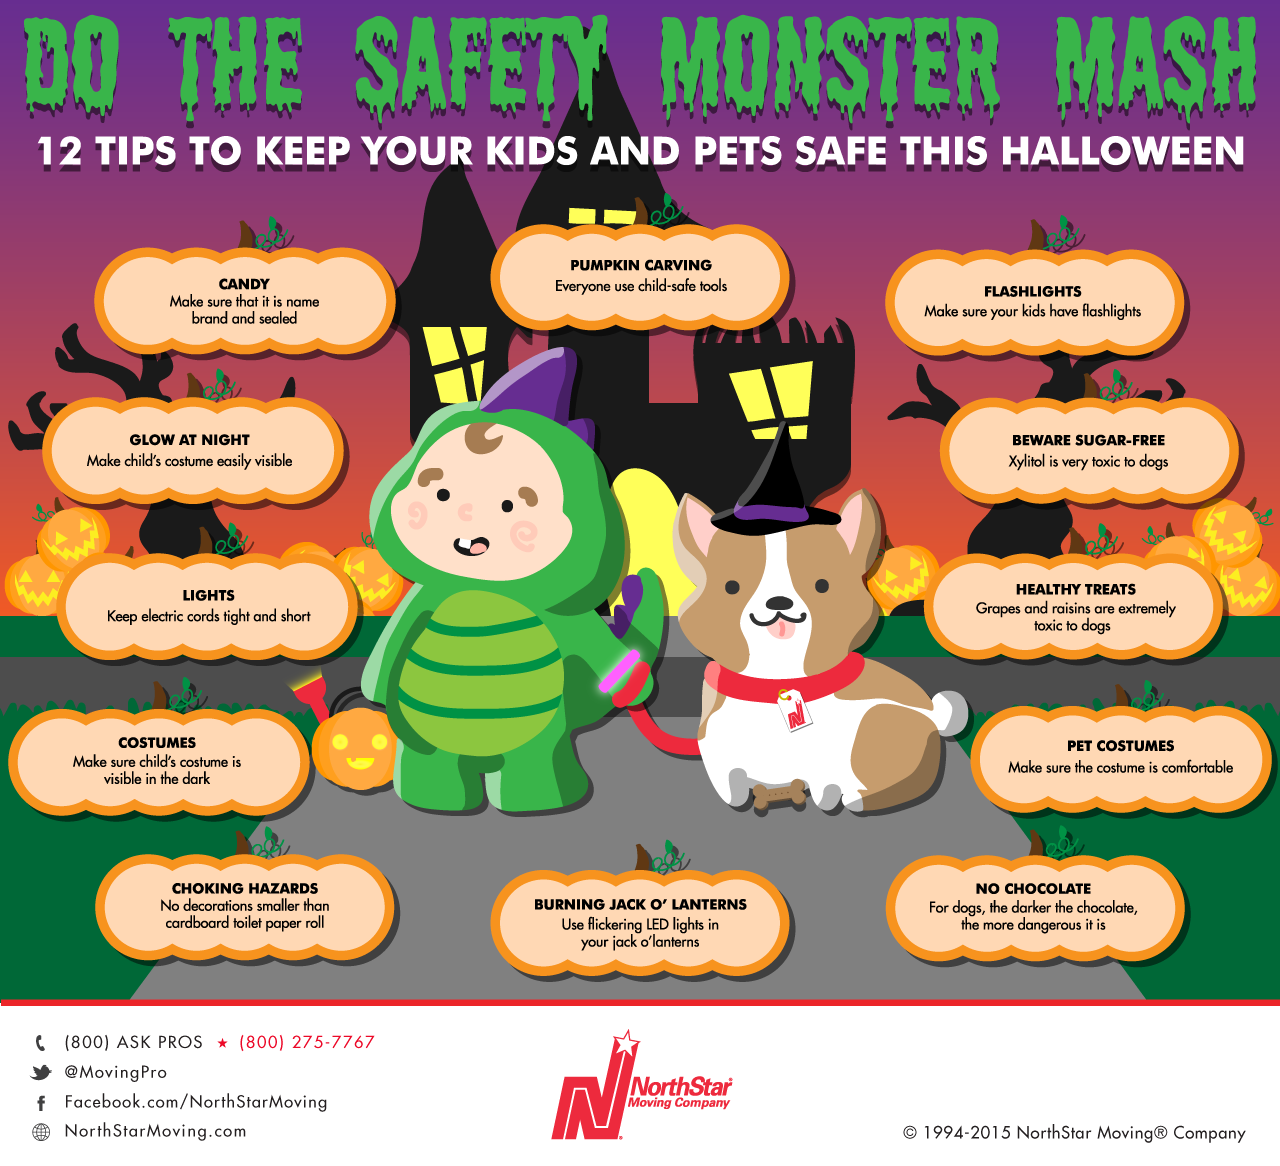 Experts share simple tips for a safe, scare-free Halloween to keep ...